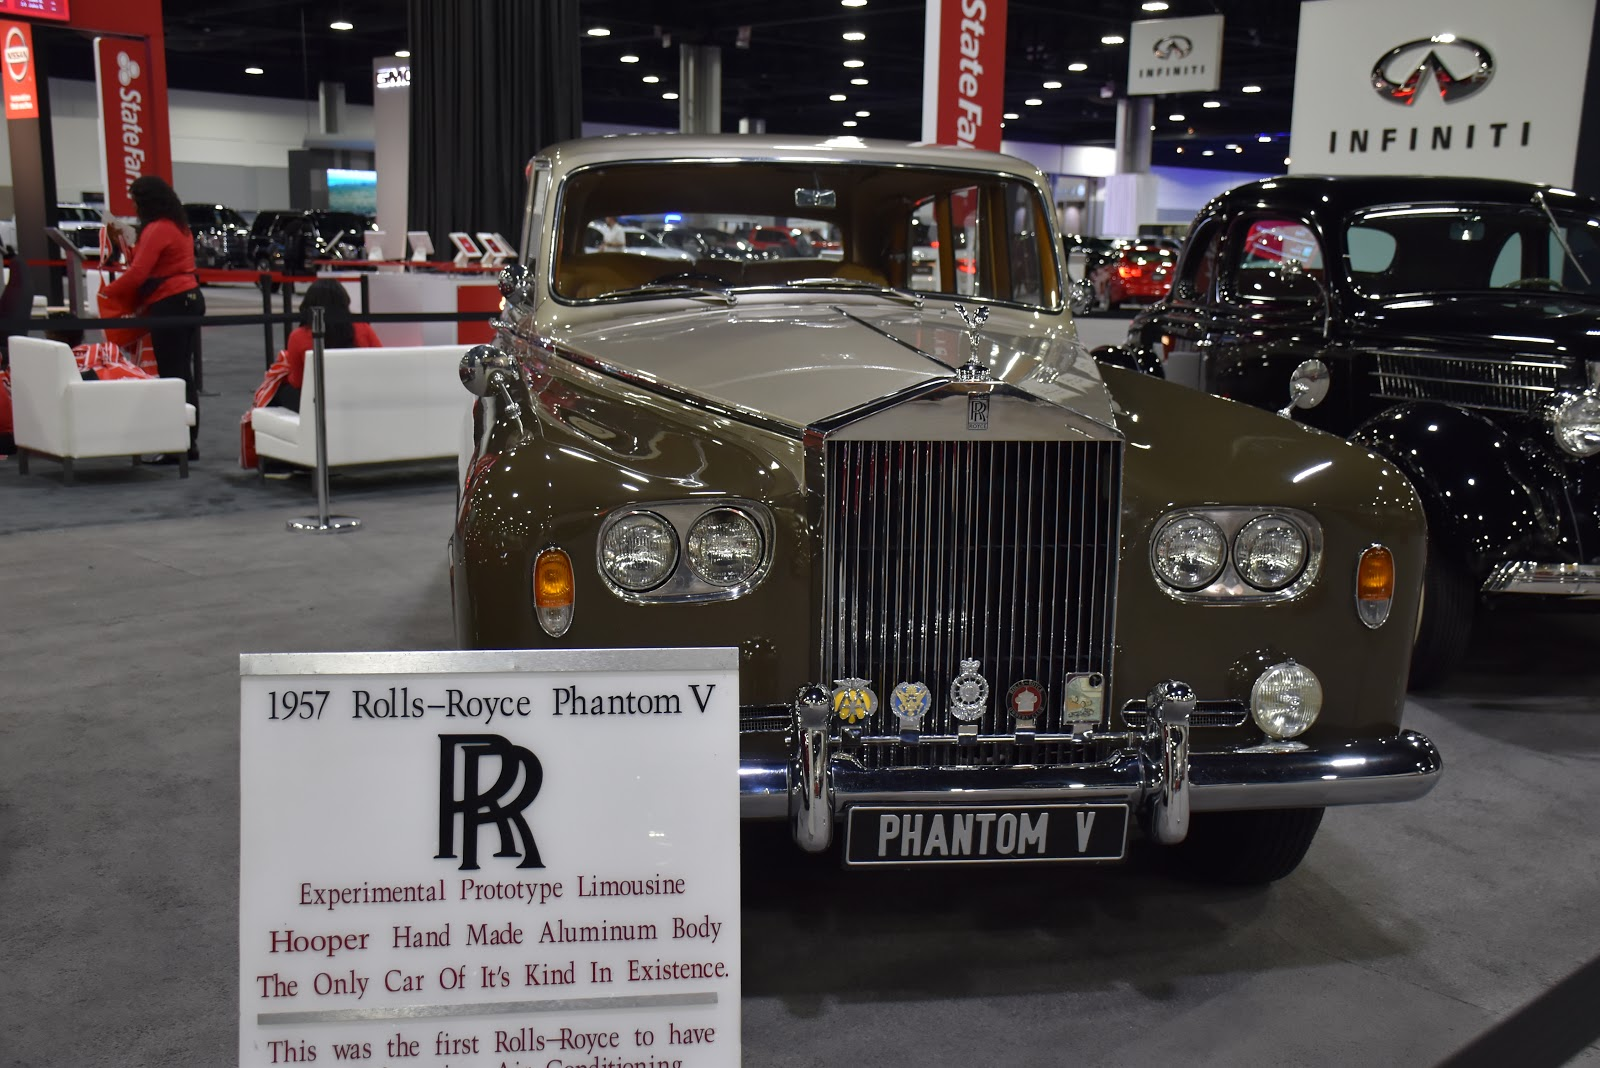 1957 Rolls-Royce Phantom V